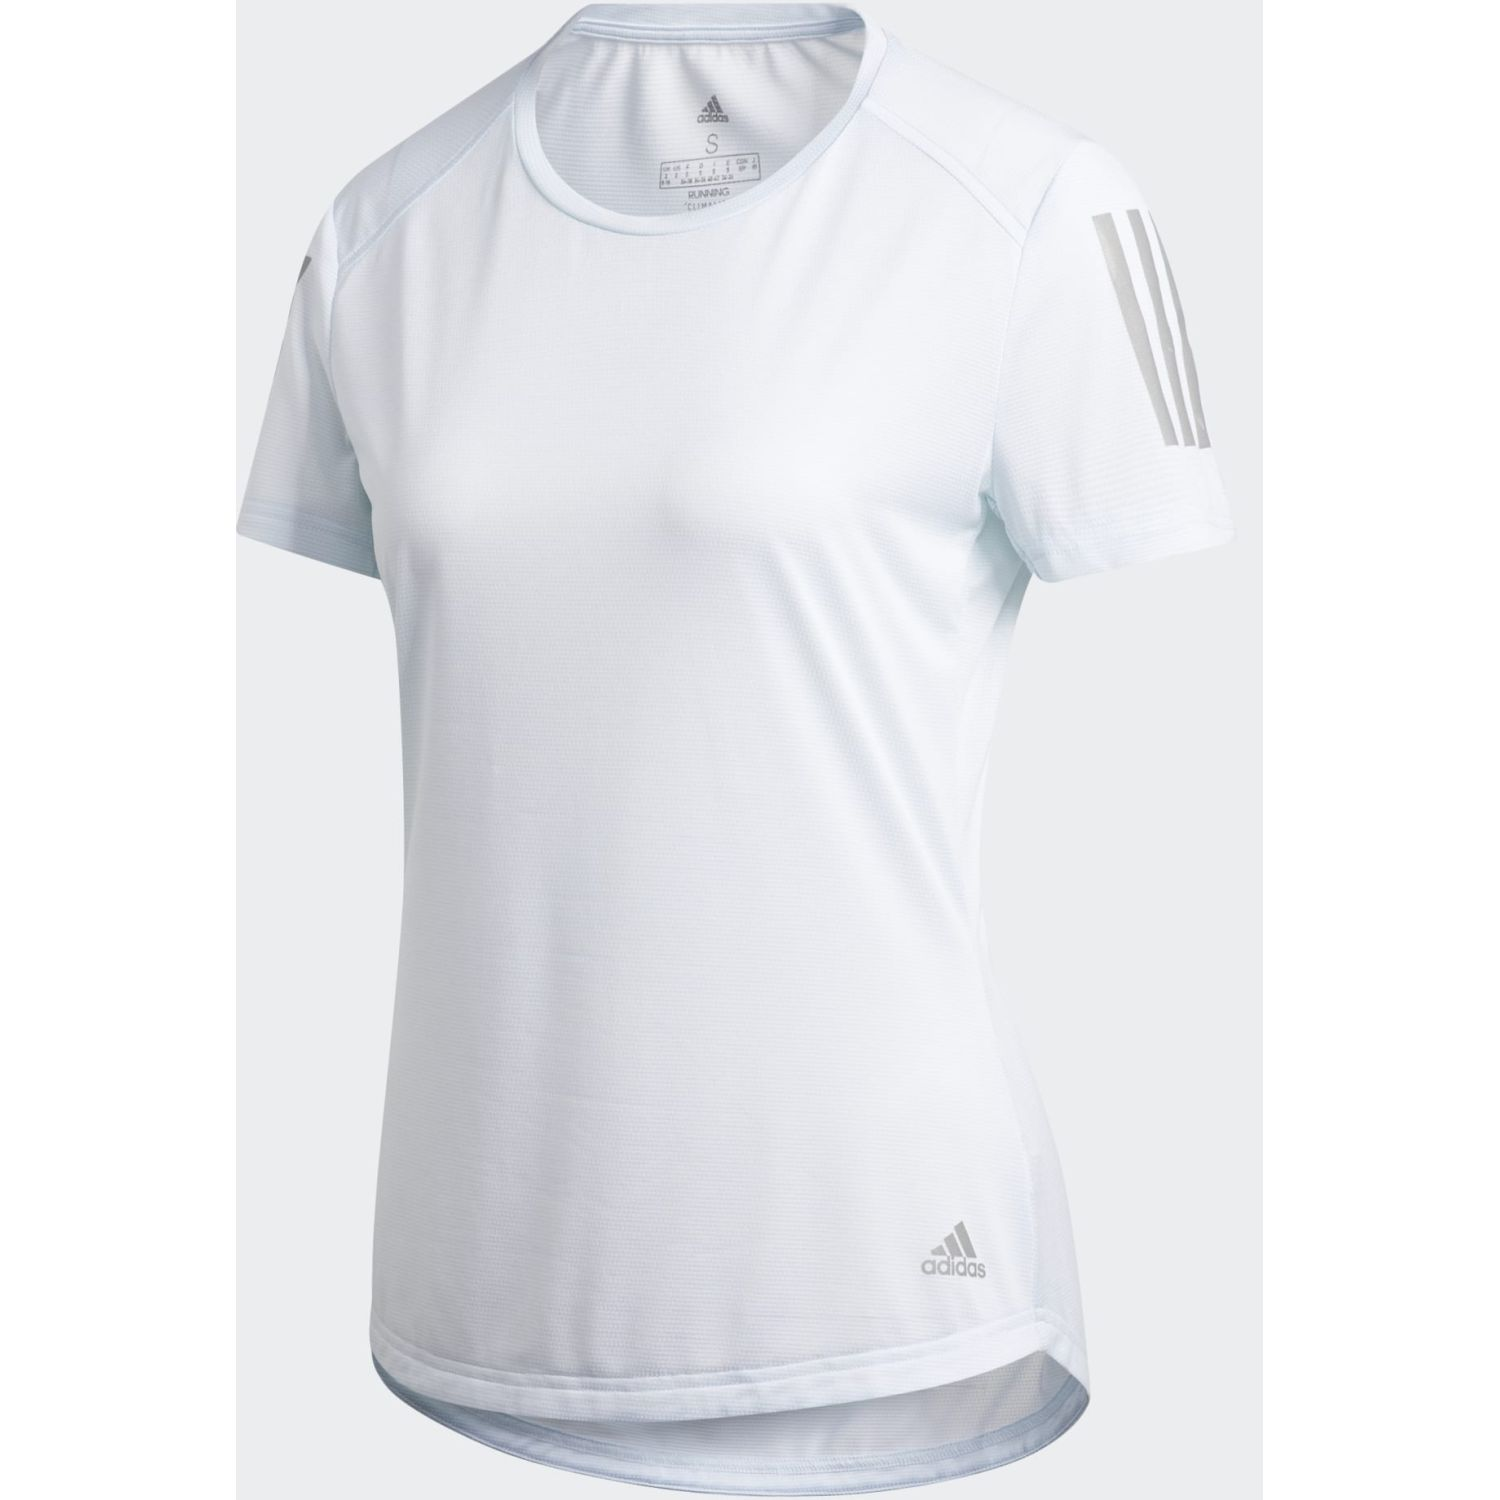 Adidas OWN THE RUN TEE Celeste Polos